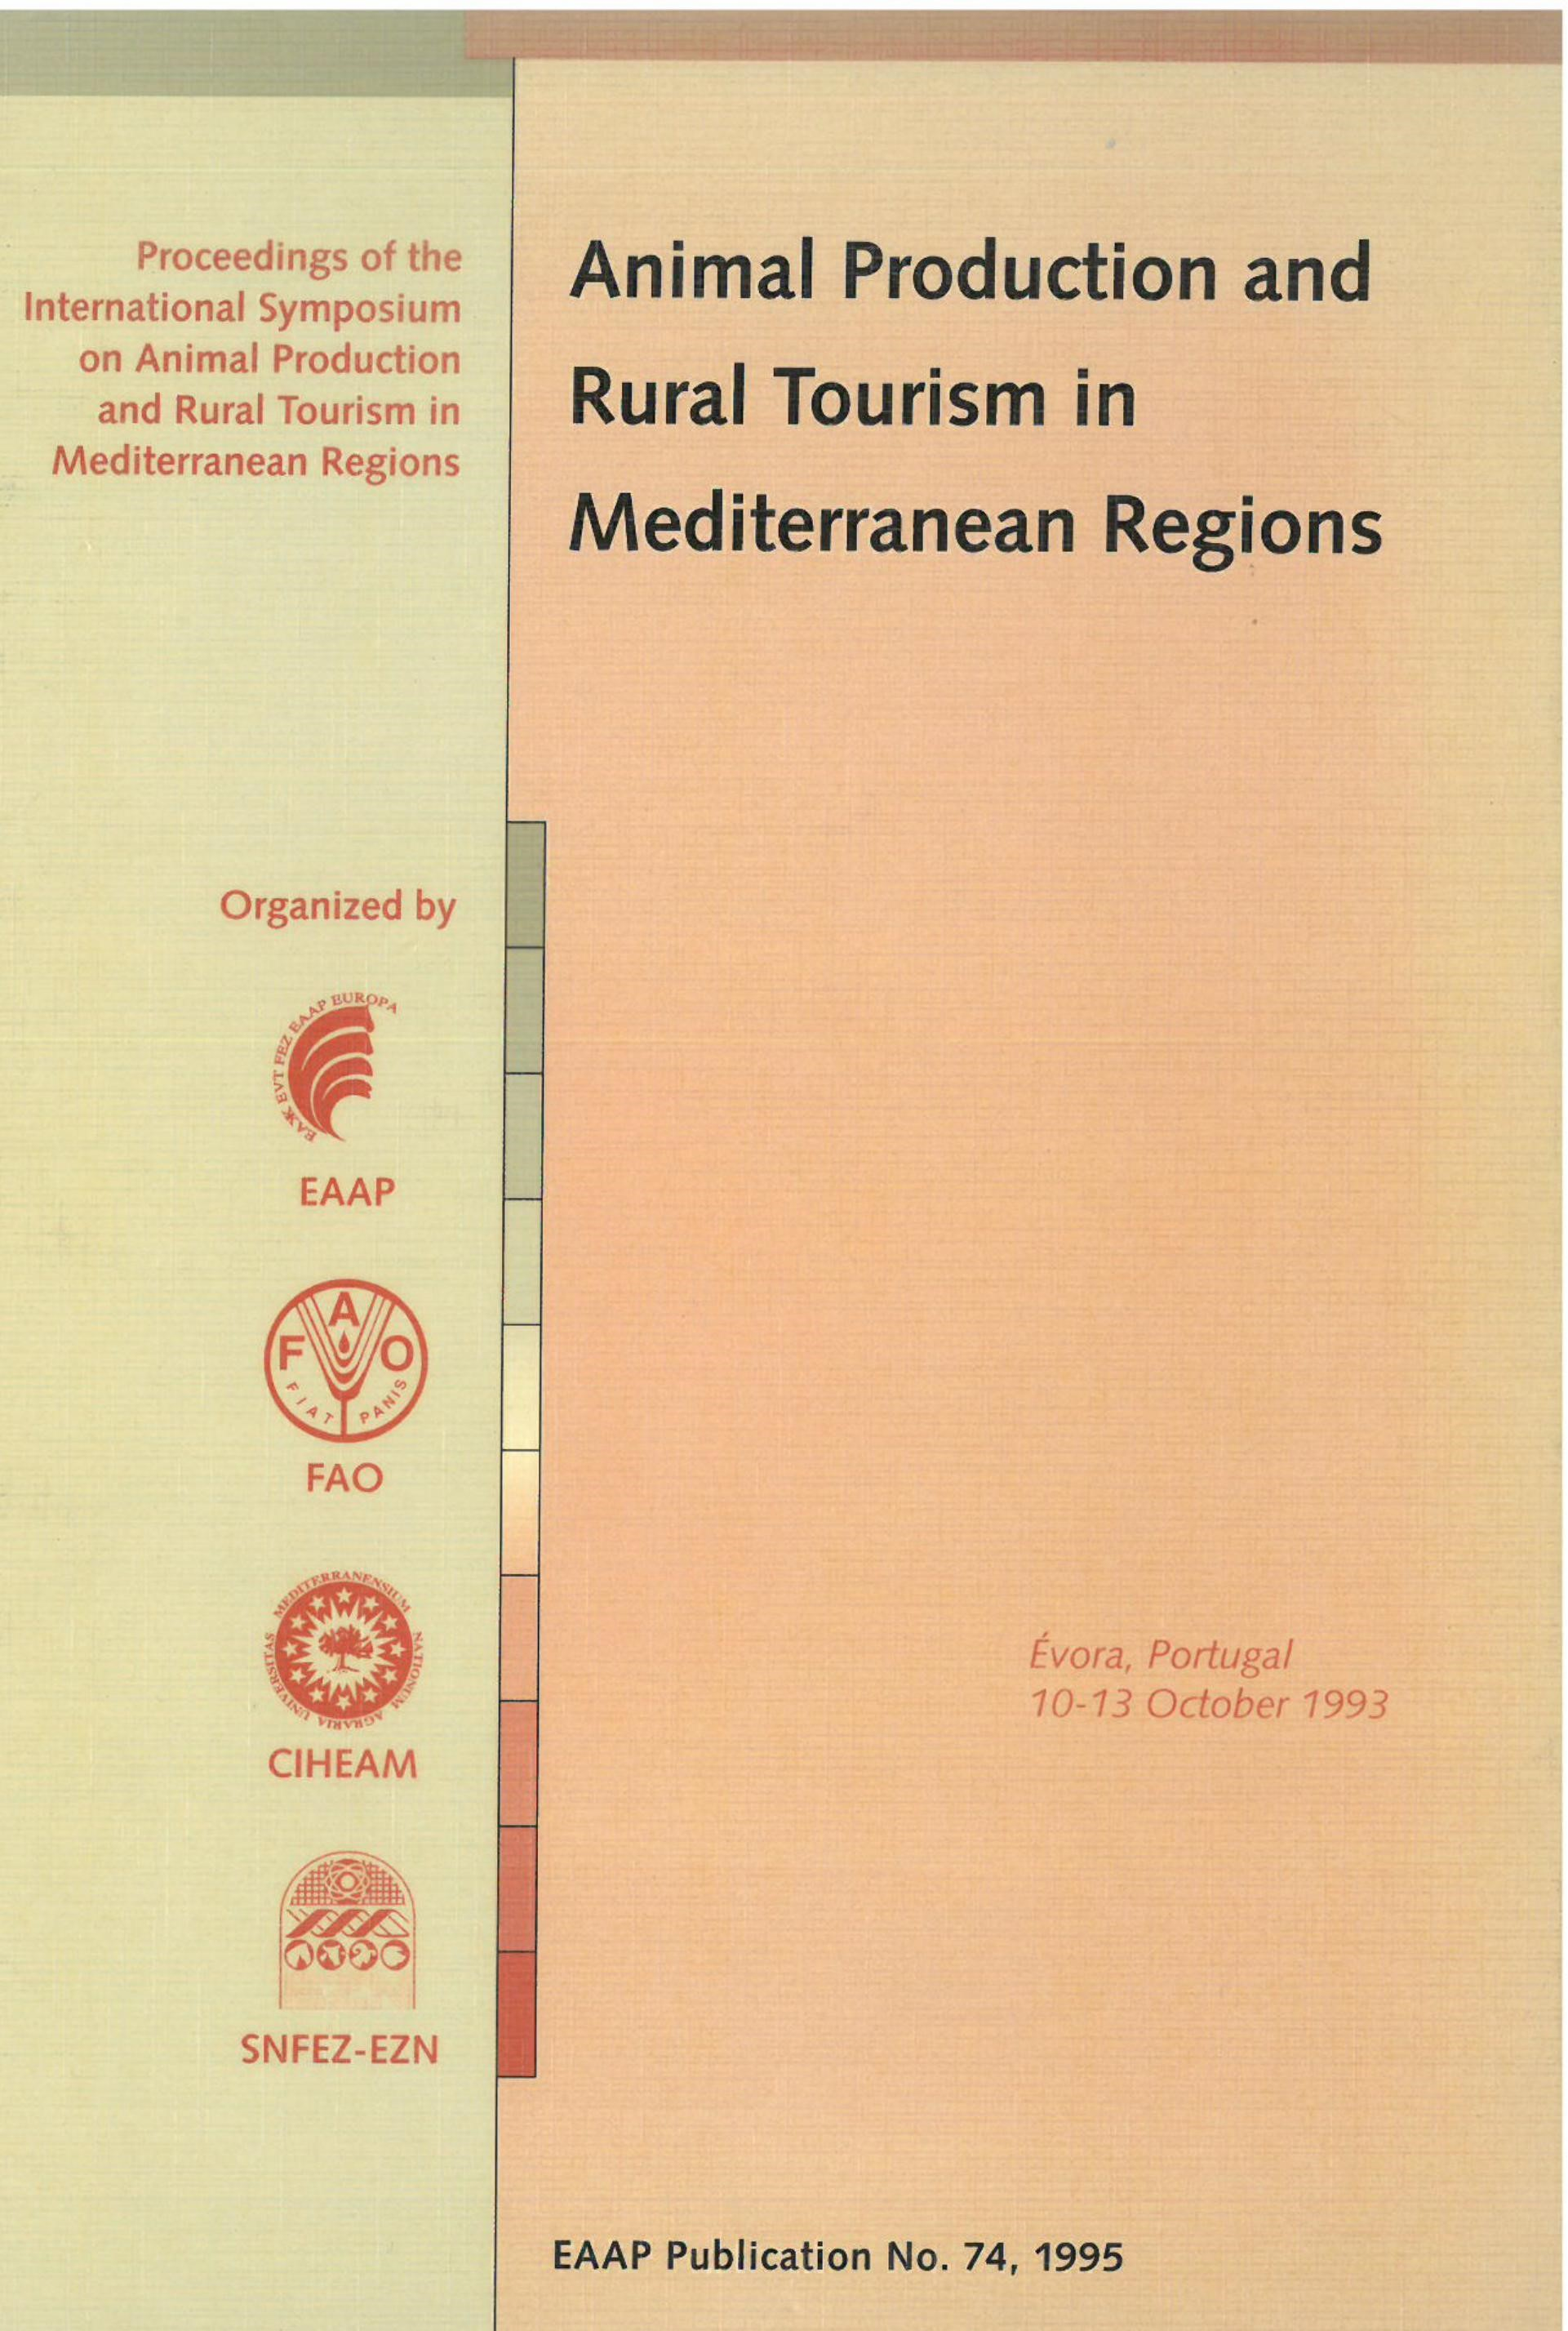 Animal production and Rural Tourism in Mediterranean Regions